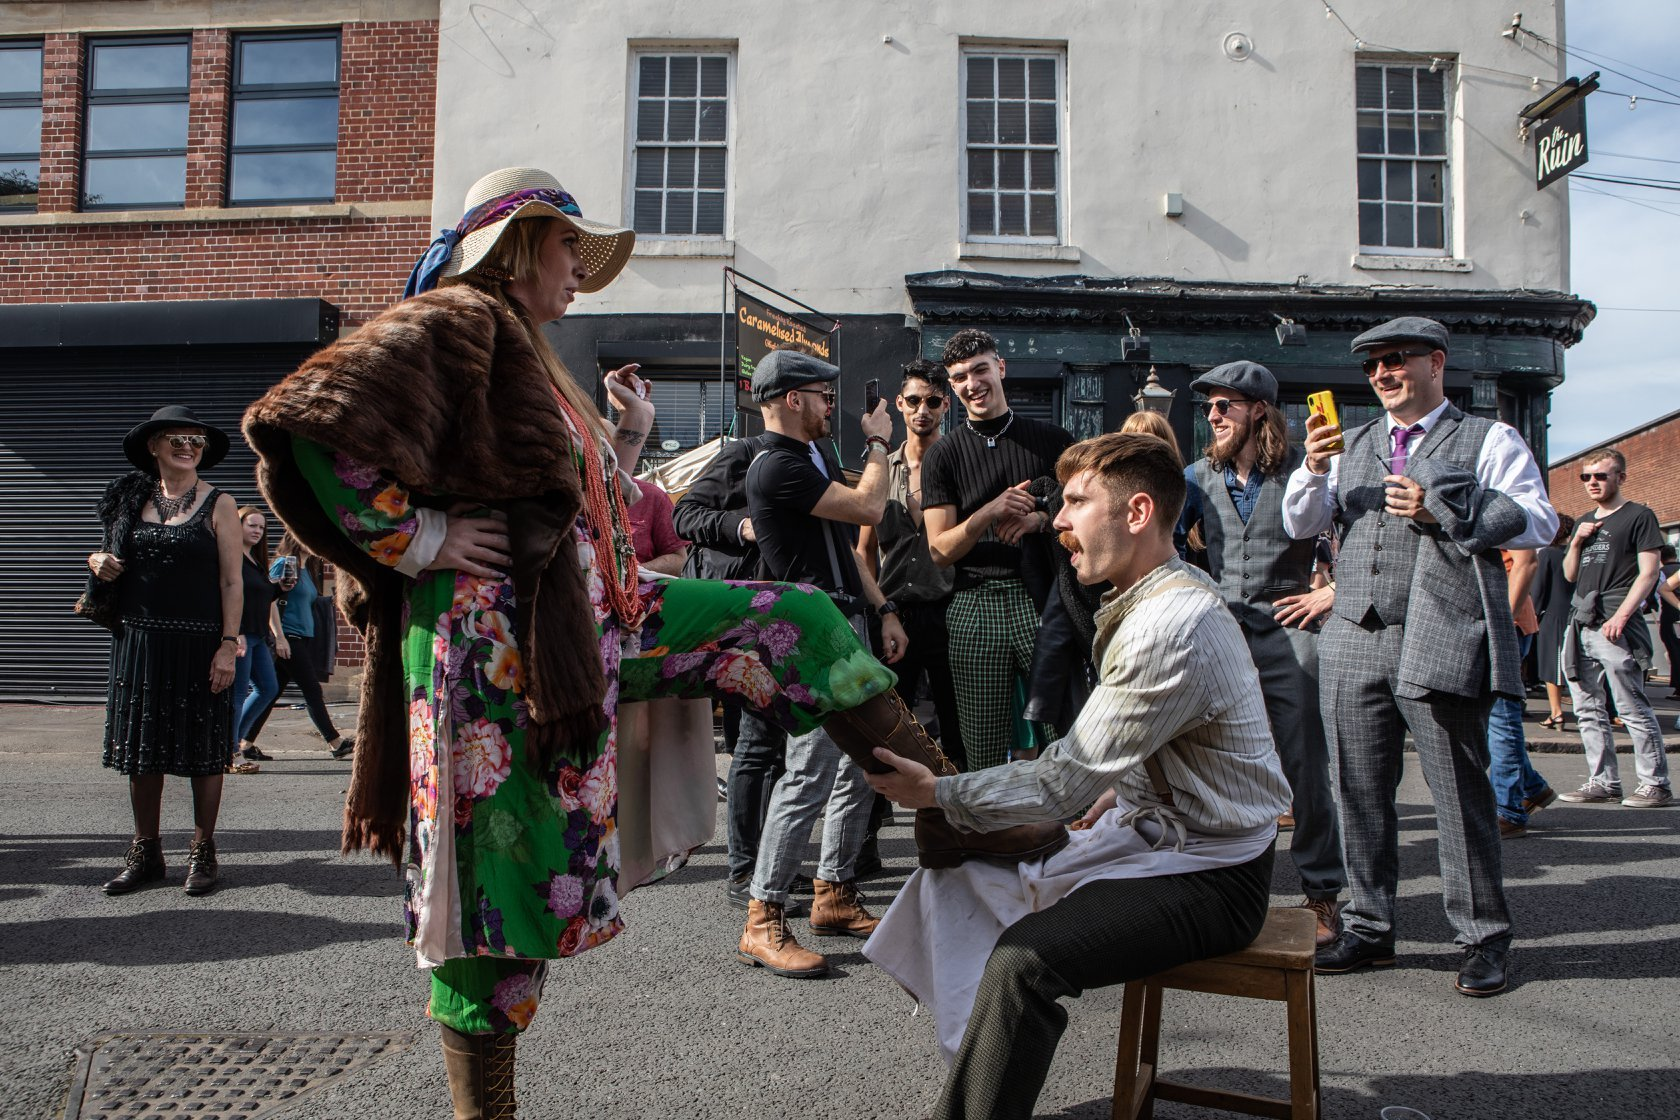 The Legitimate Peaky Blinder's Festival